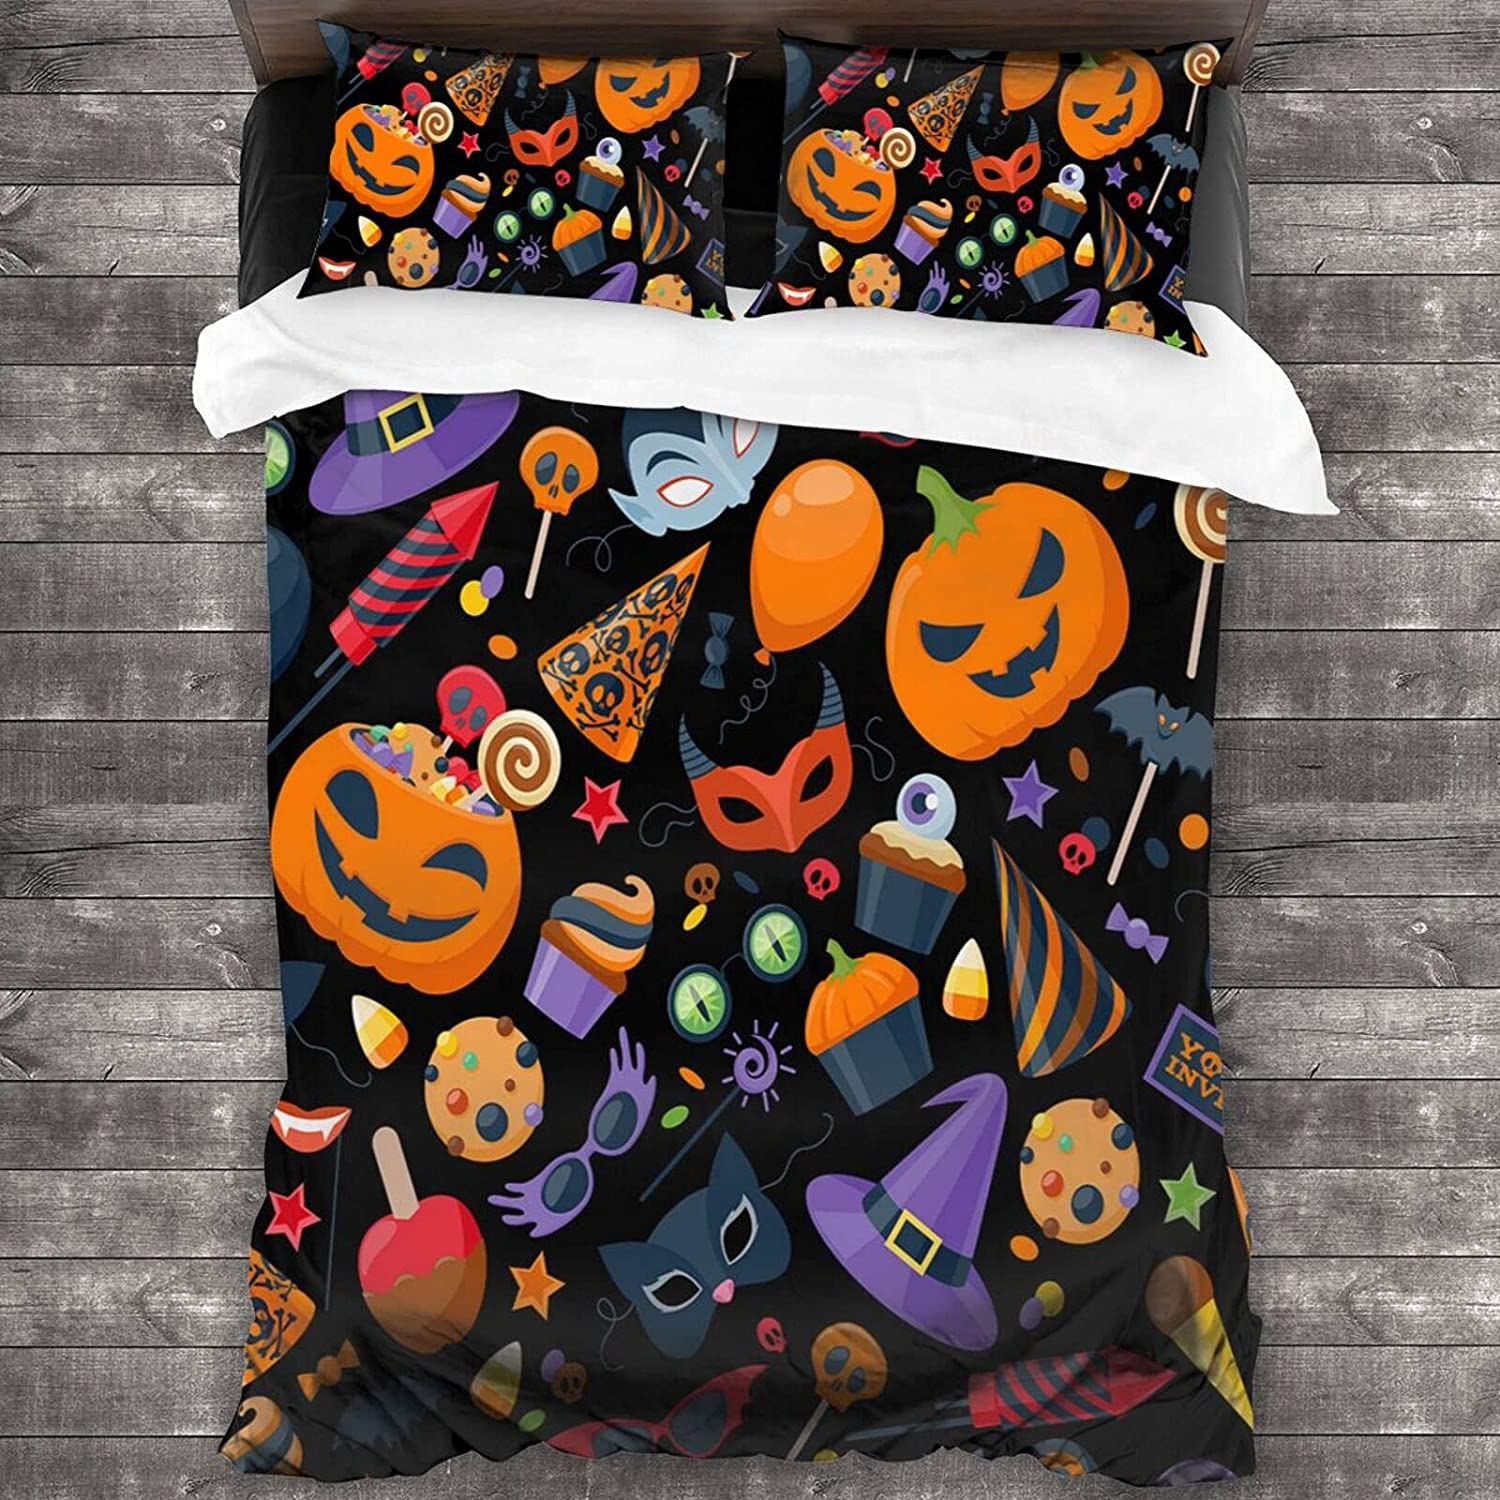 SUPNON Halloween Party Colorful Seamless Pattern Comforter Pcs free shipping 3 OFFicial site